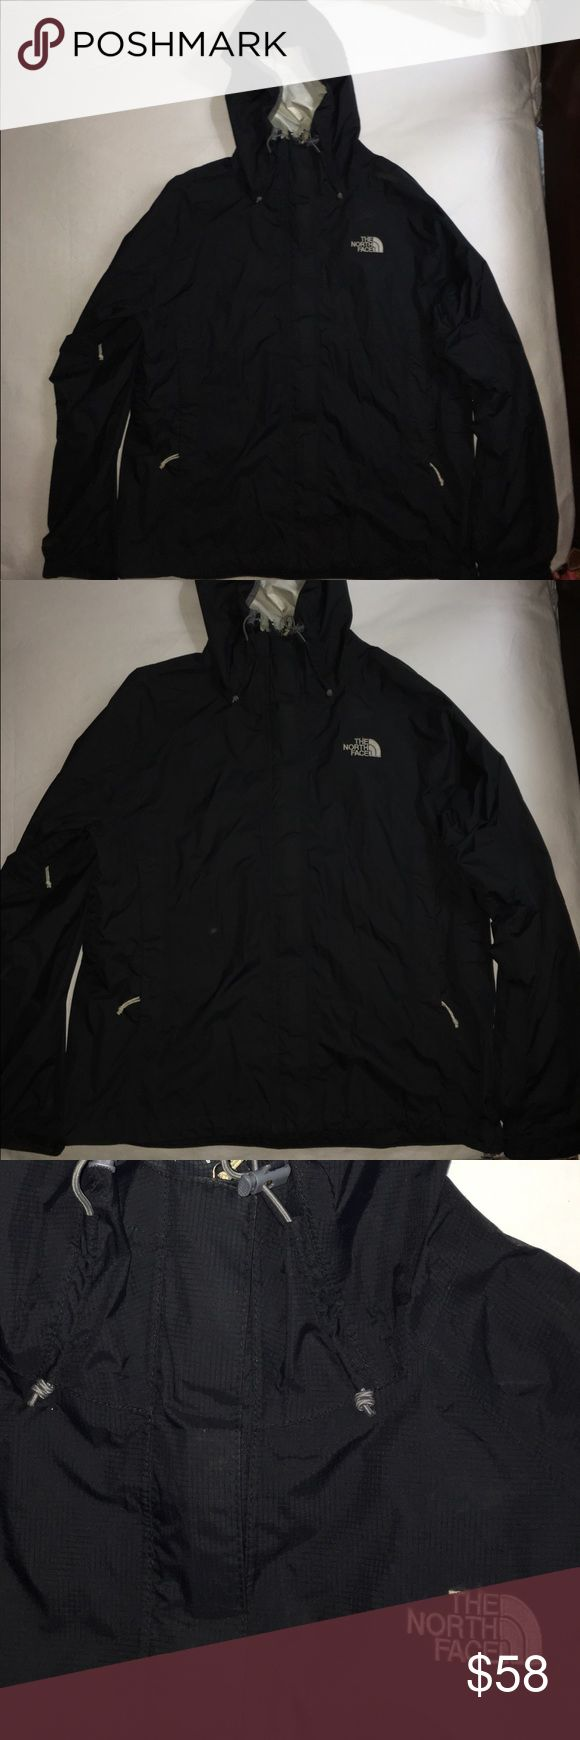 North face rain jacket In good condition. Has some piling from the inside only on top. The North Face Jackets & Coats